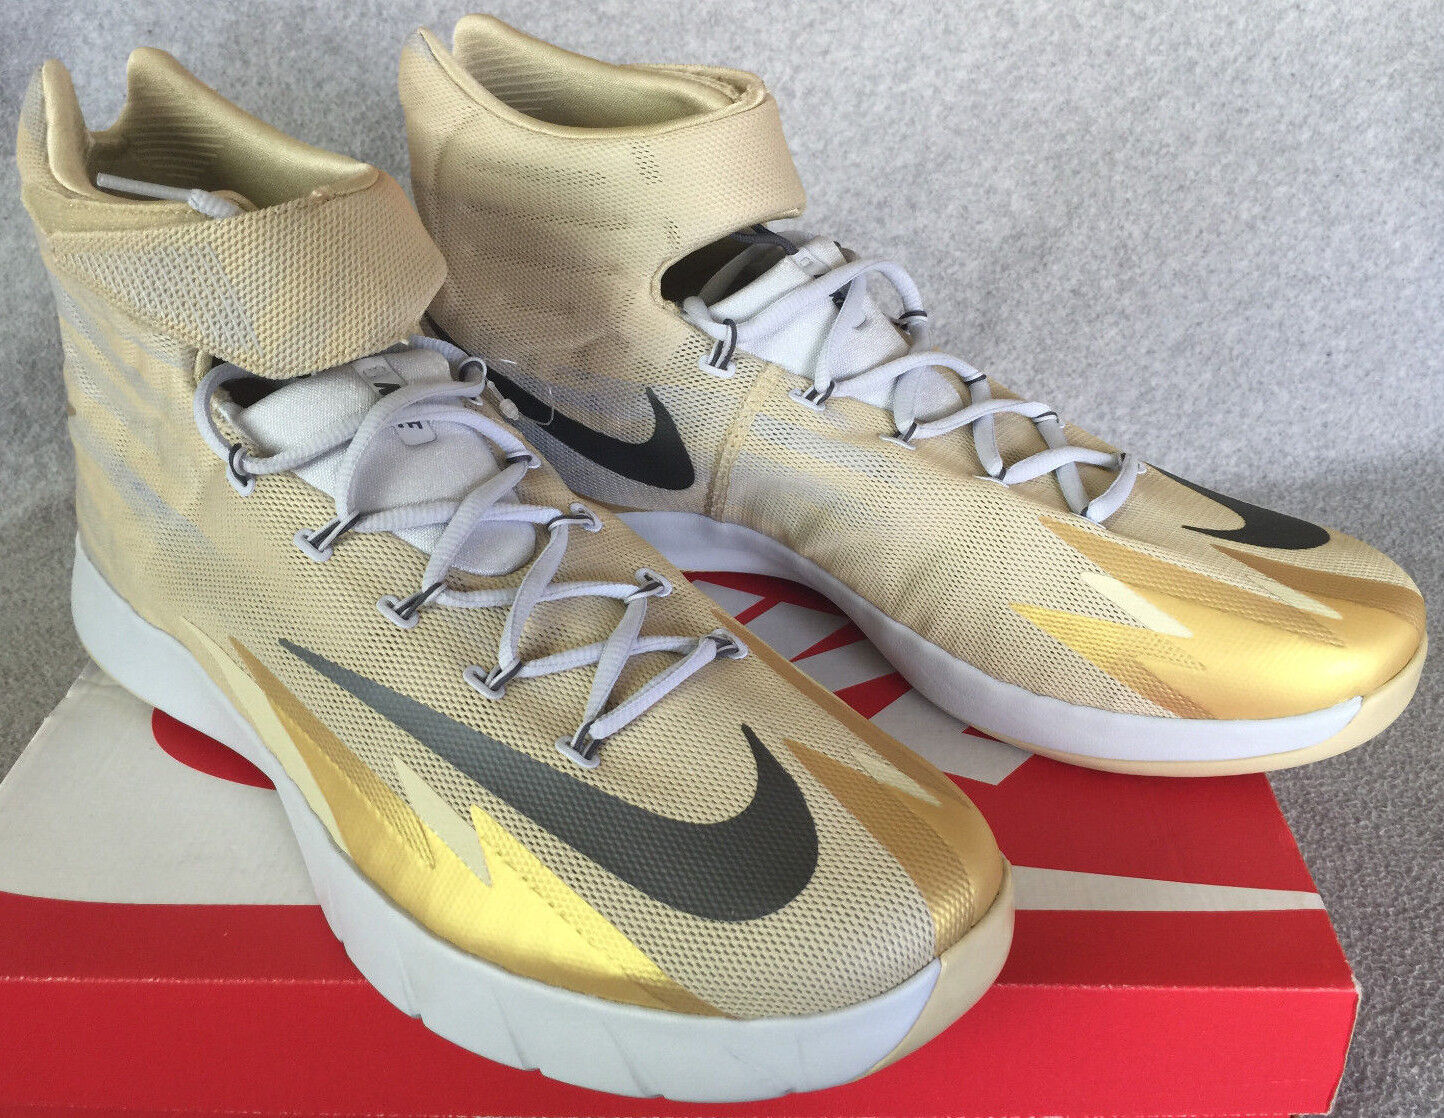 Nike Zoom Hyperrev 16 Erving 643301-703 Gold Basketball chaussures homme 16 Hyperrev NBA new a29785